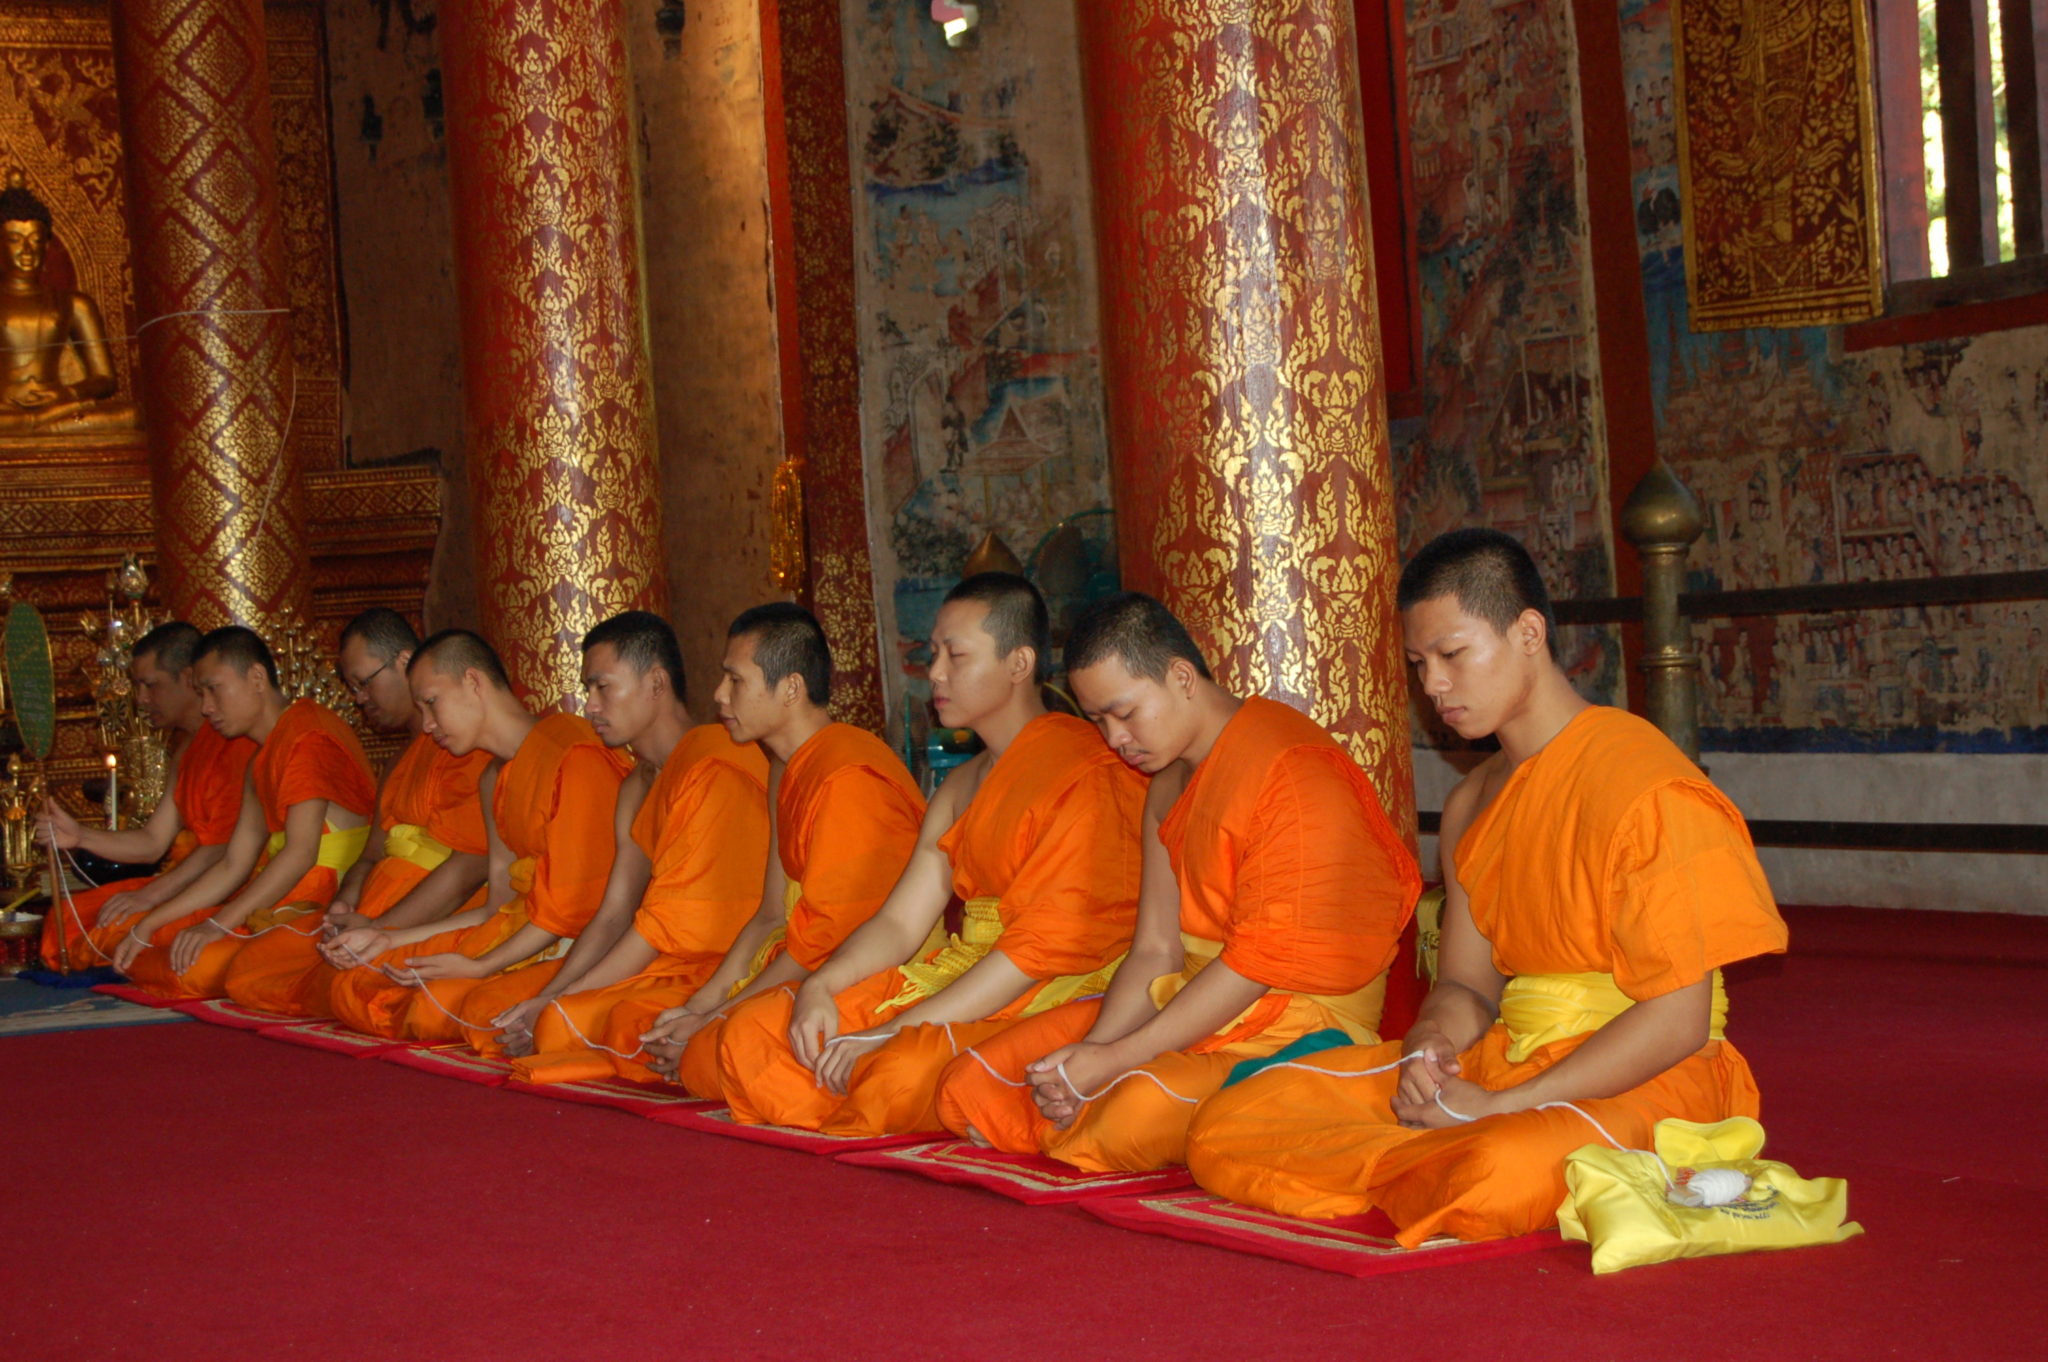 Monks in temple in Chiang Mai, Thailand